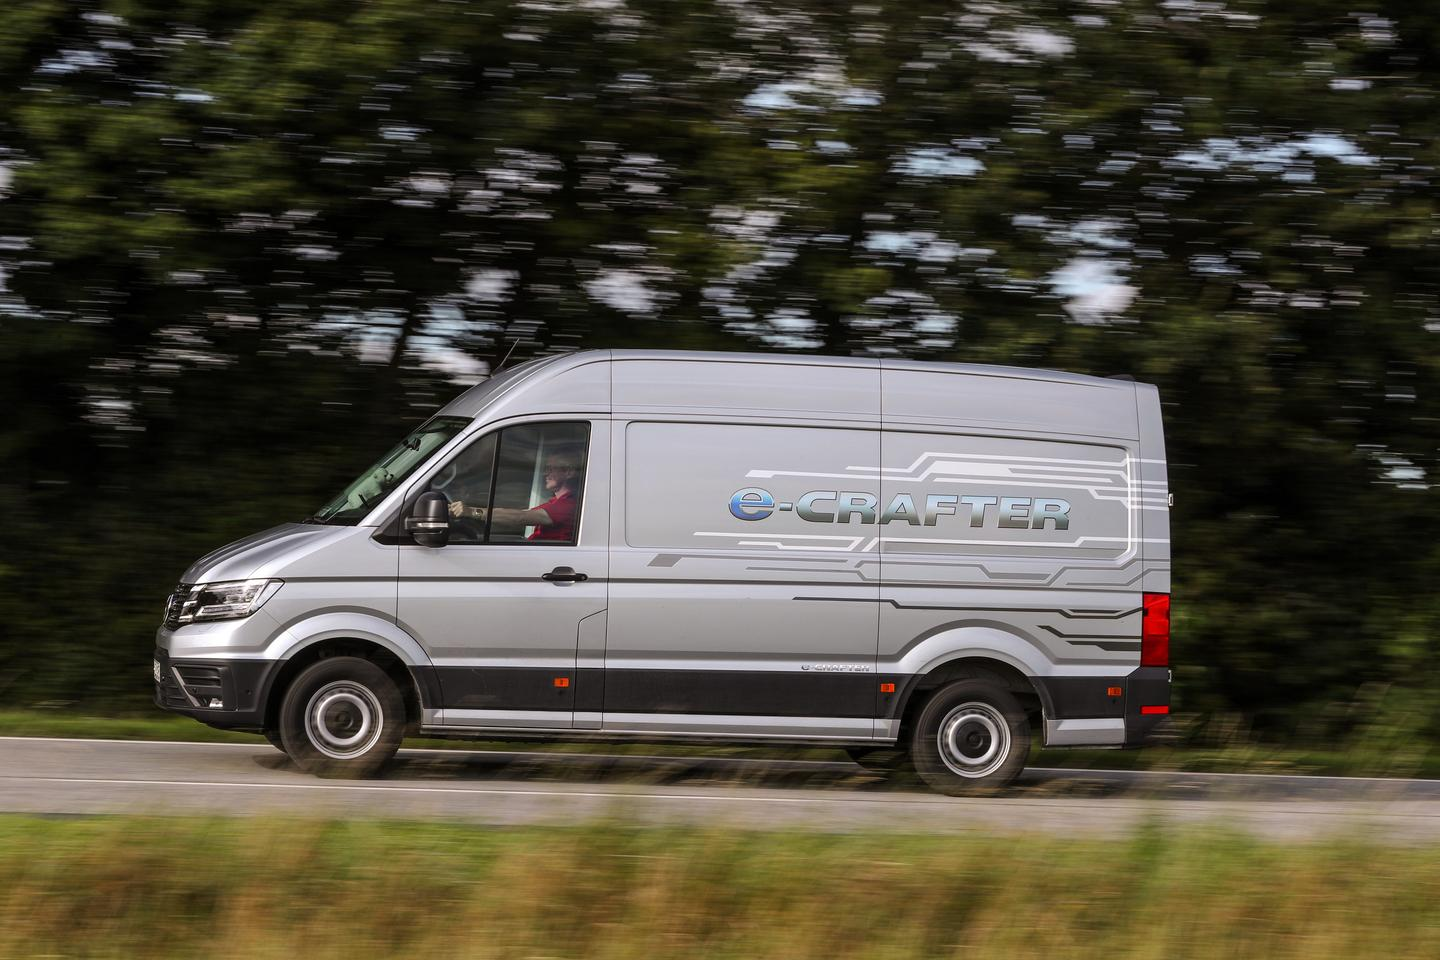 The e-Crafter is powered by a 134-hp electric motor and 35.8-kWh battery